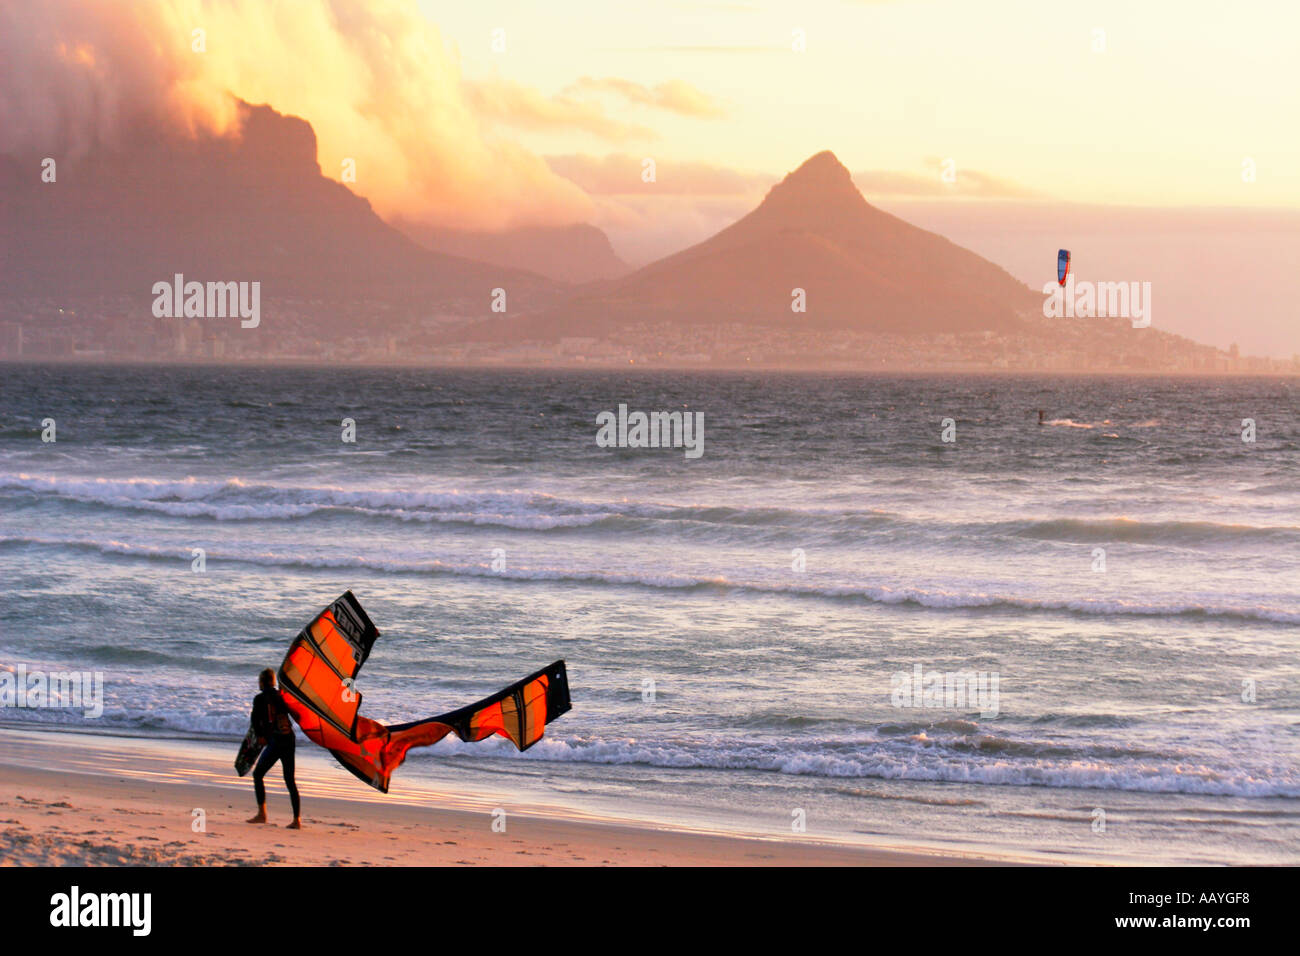 Sud Africa cape town blouberg beach table mountain sunset kitesurfer Immagini Stock